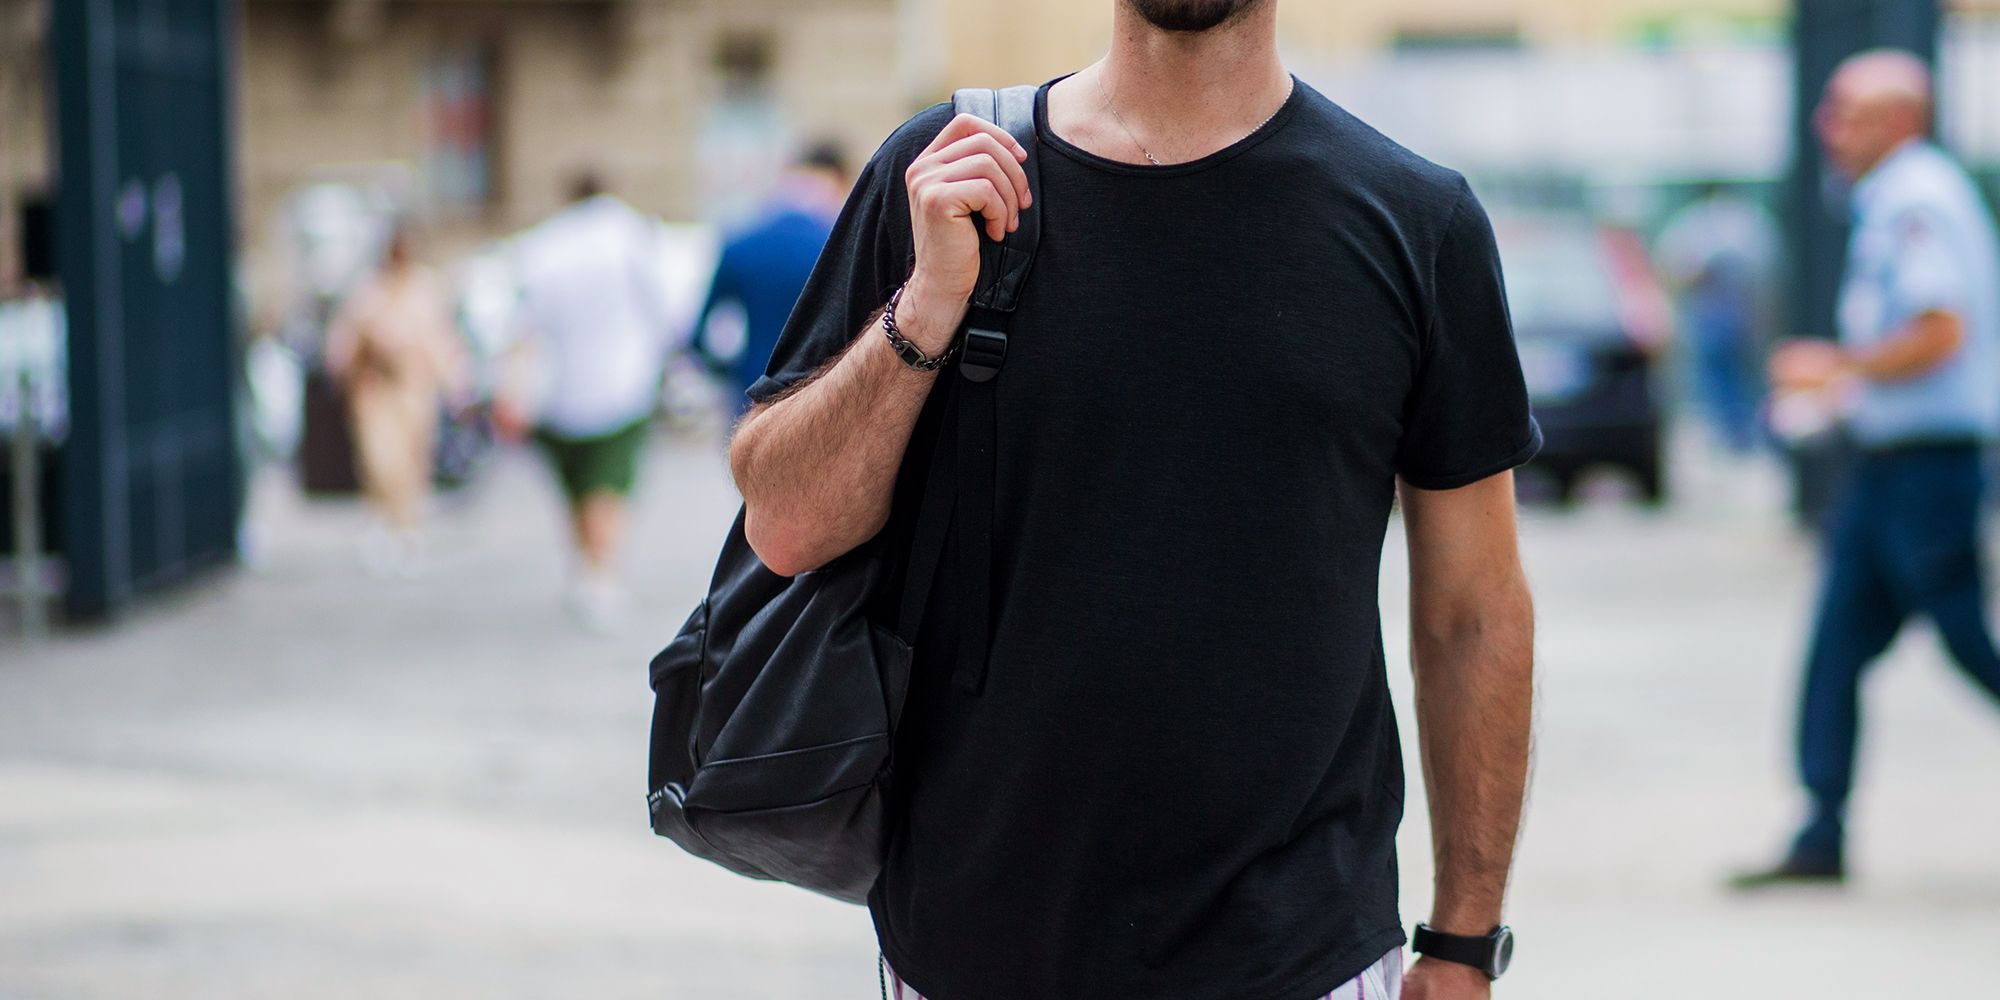 98465f5ddd82 13 Best Black T-shirts for Men 2018 - Black T-Shirts for Every Budget